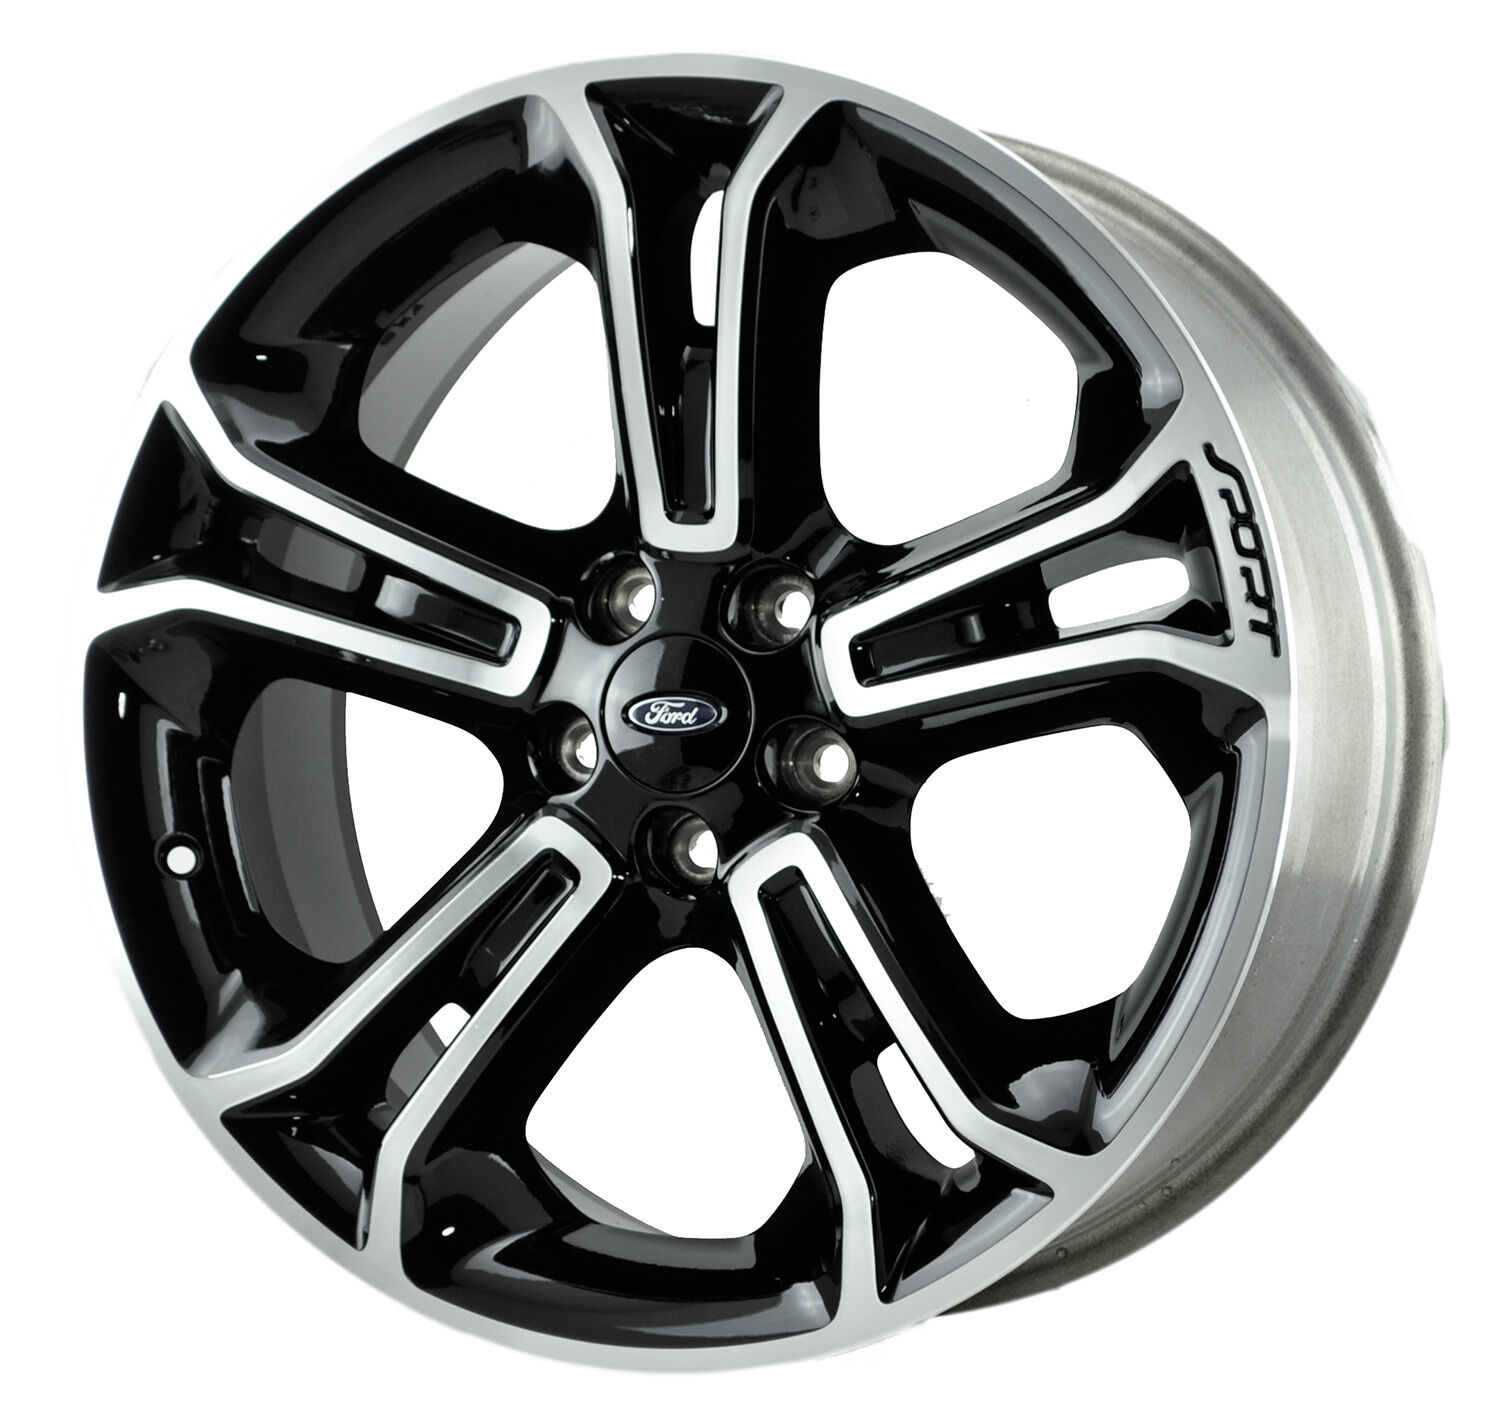 Used Ford Wheels : Buy used ford wheels